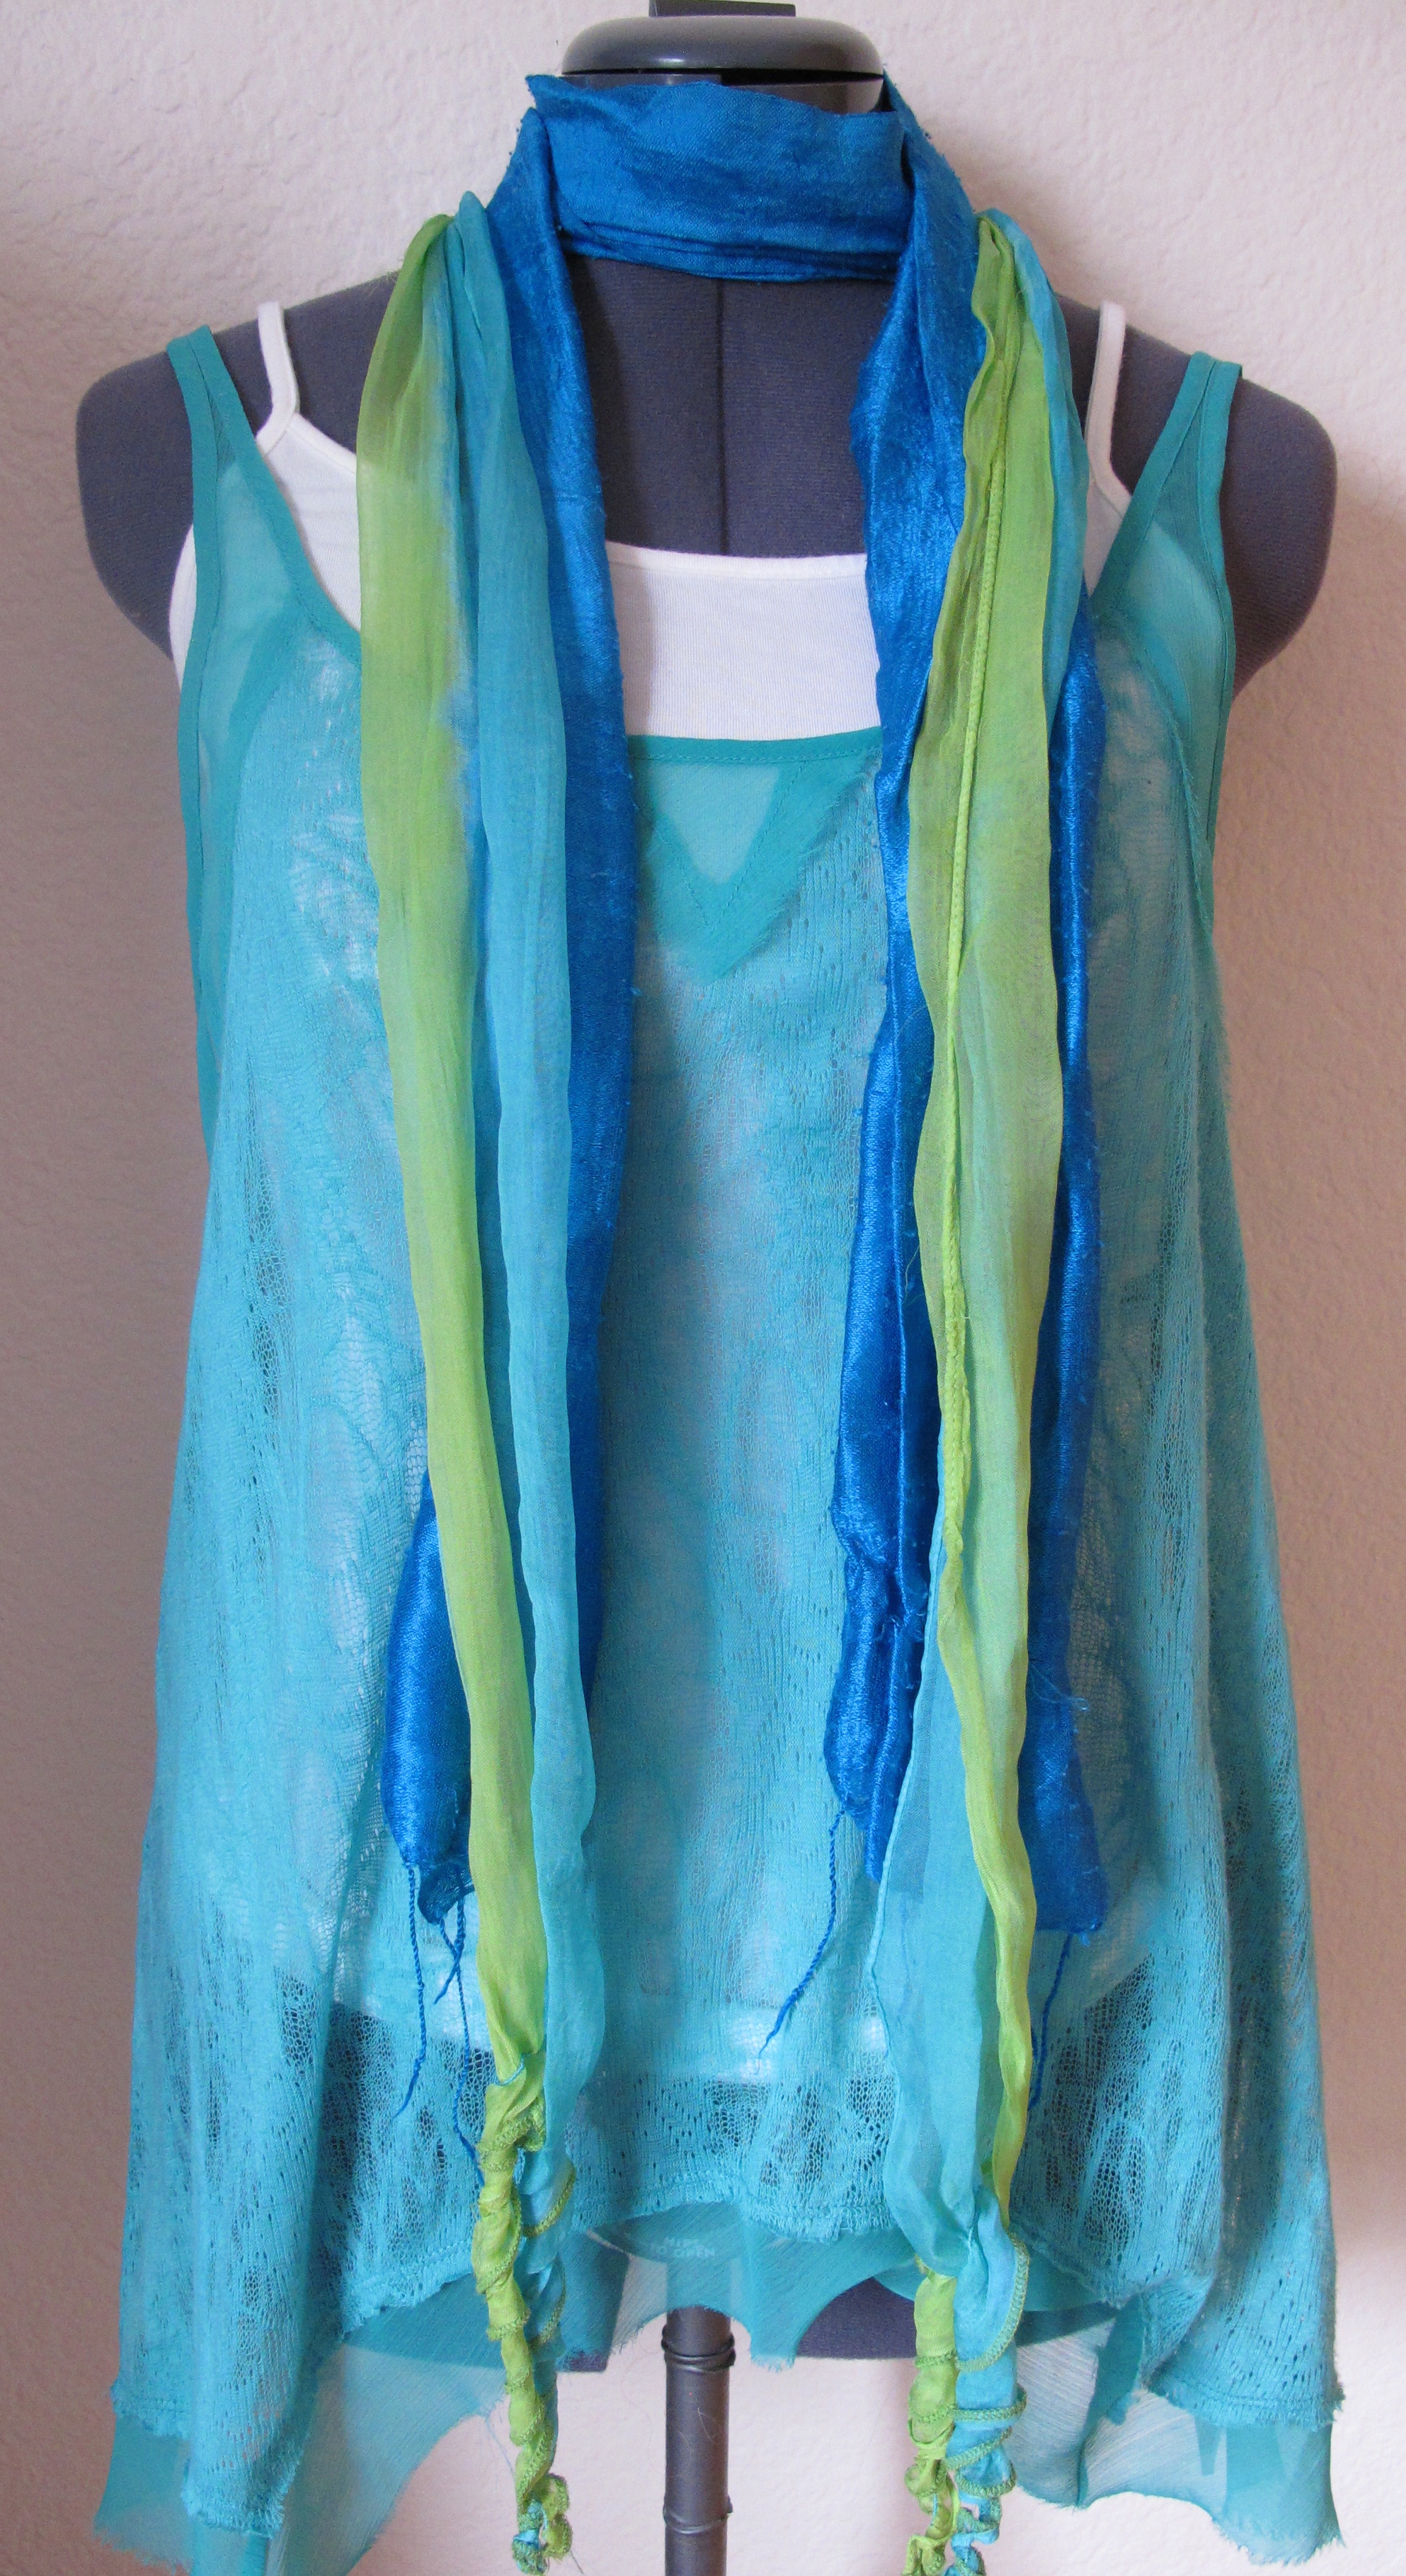 Two scarves, a solid blue and a light chiffon in blue and green.